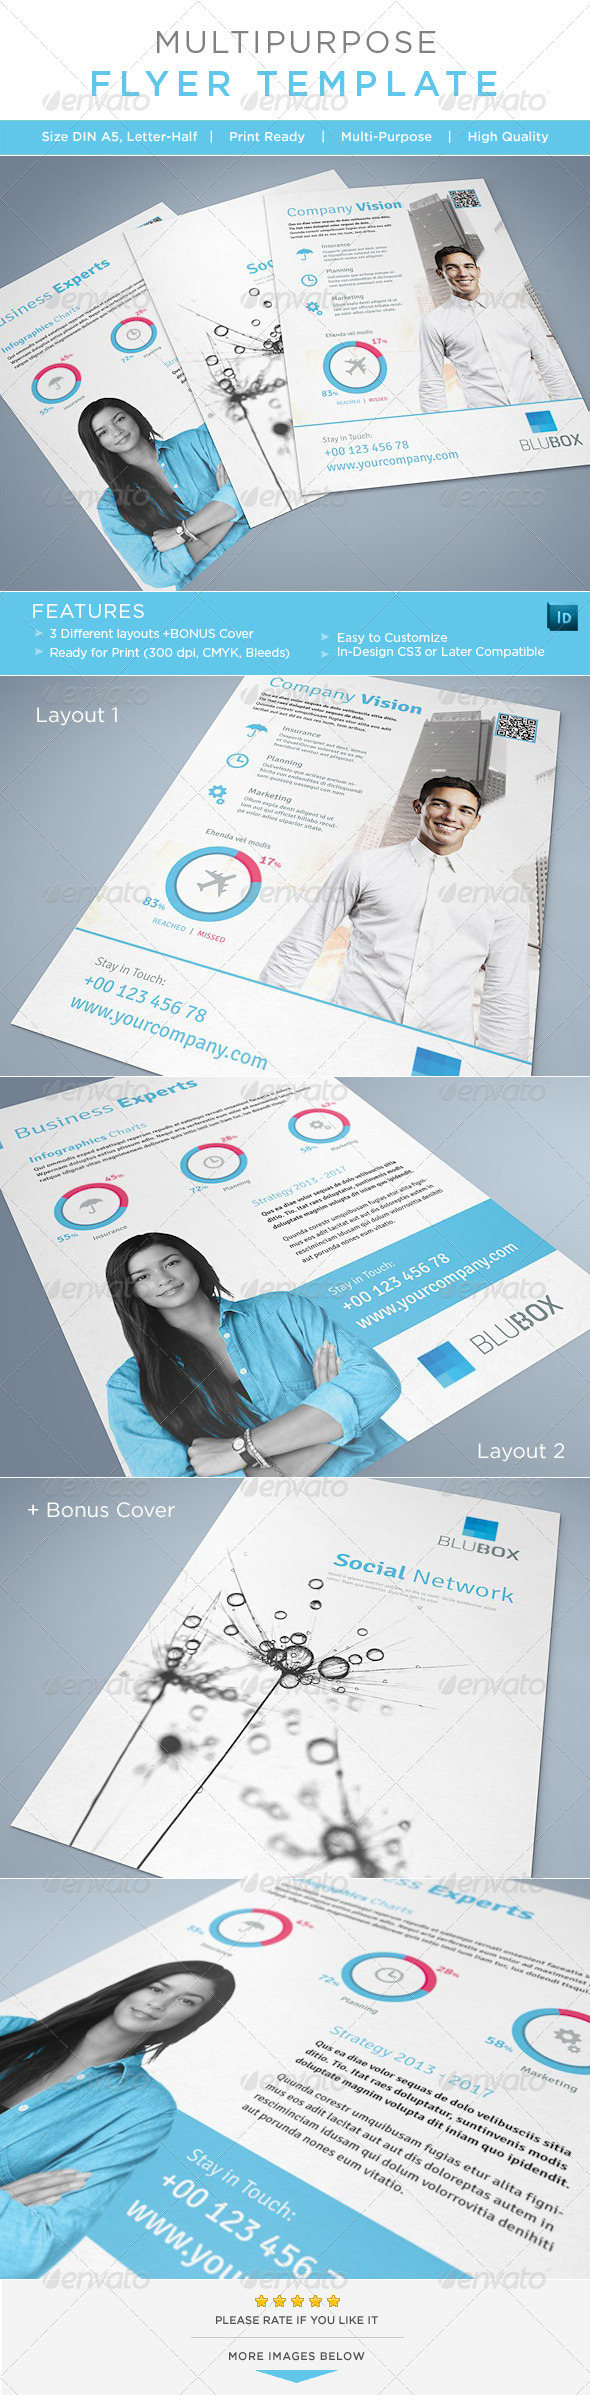 Multipurpose Flyer / AD Template - Corporate Flyers